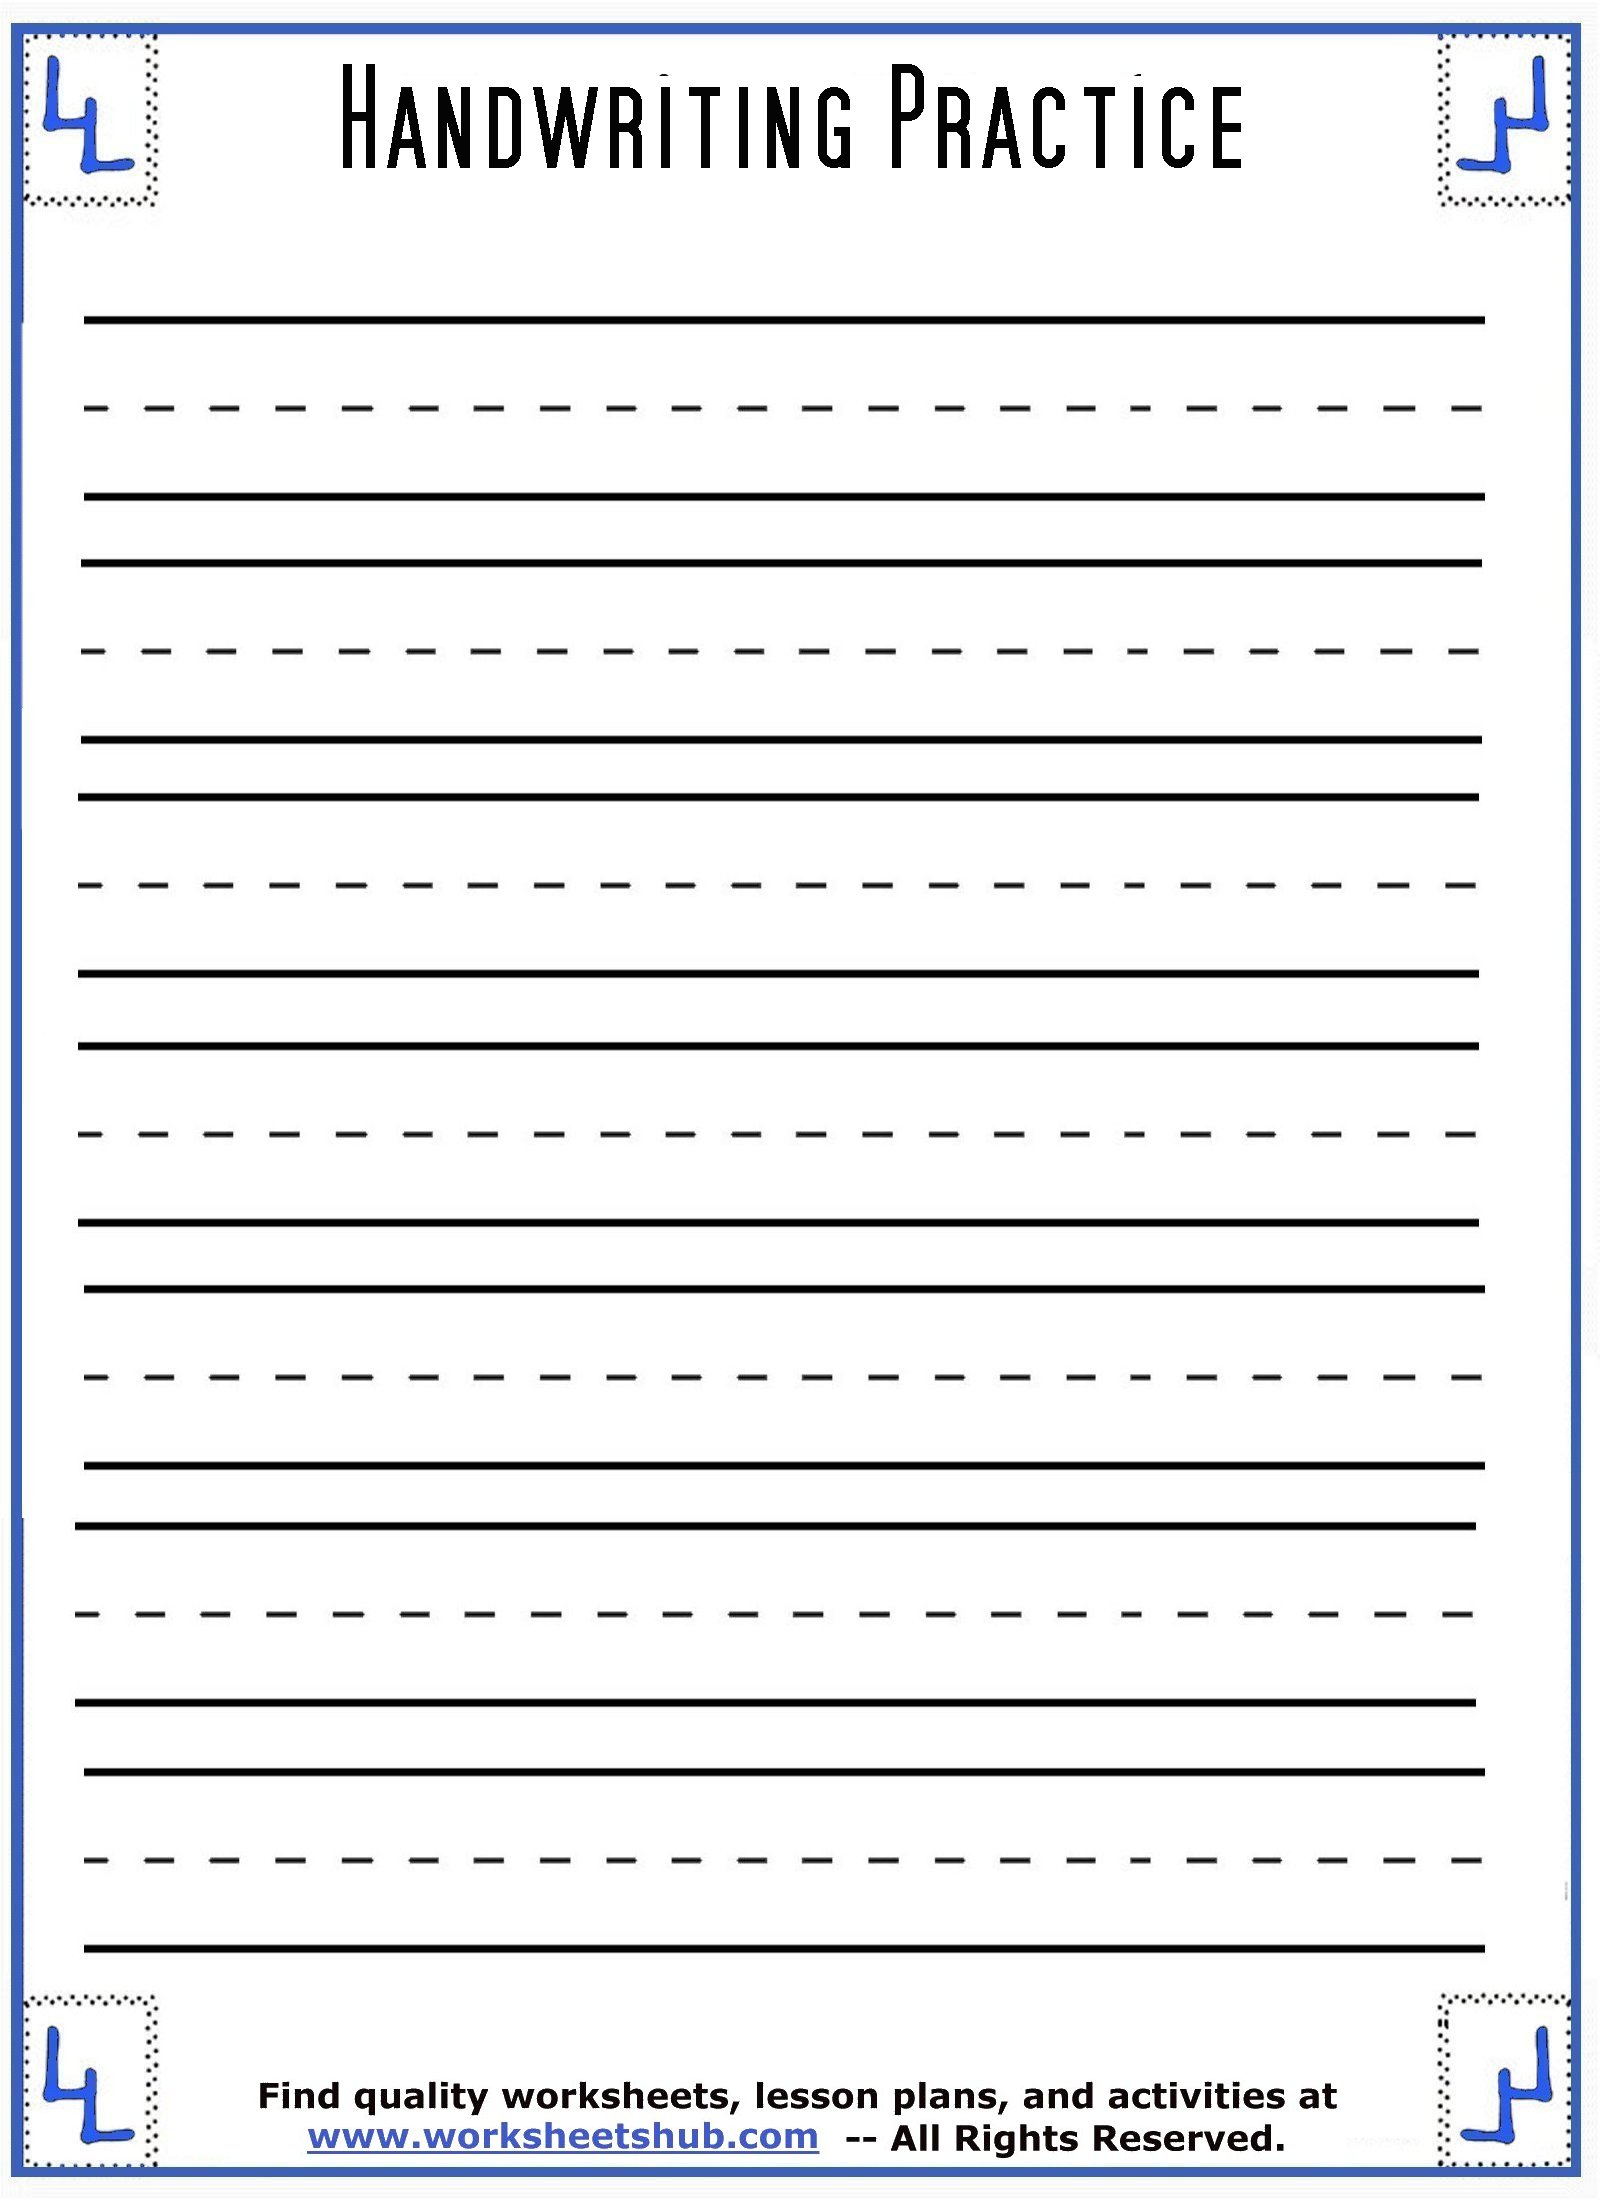 Handwriting Sheets Printable 3 Lined Paper